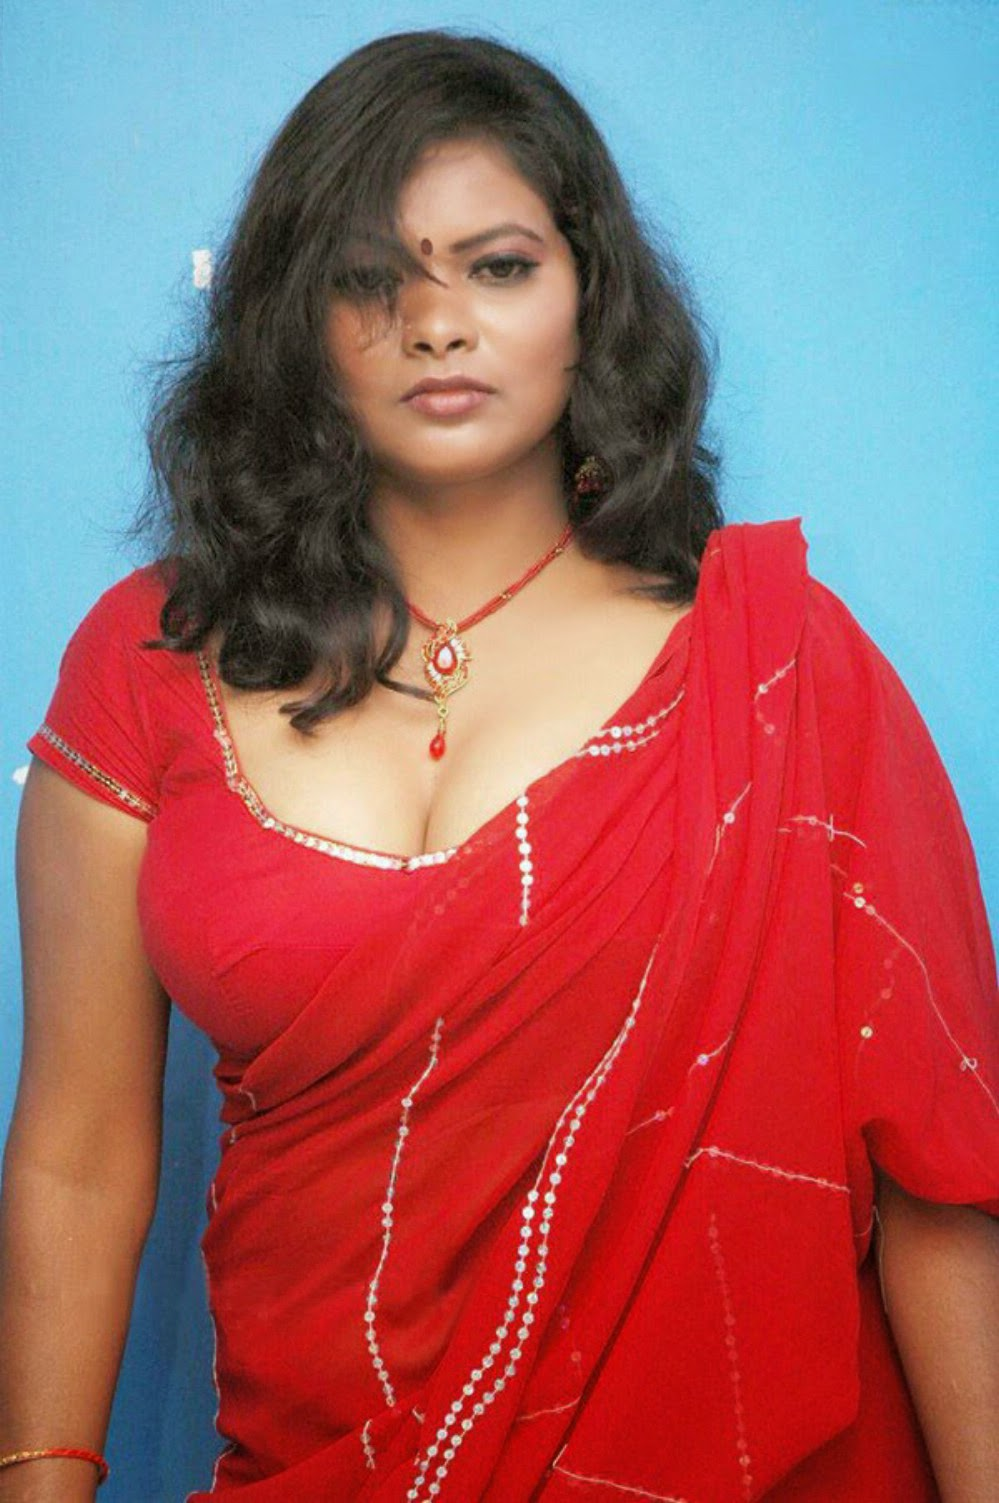 Busty aunty images